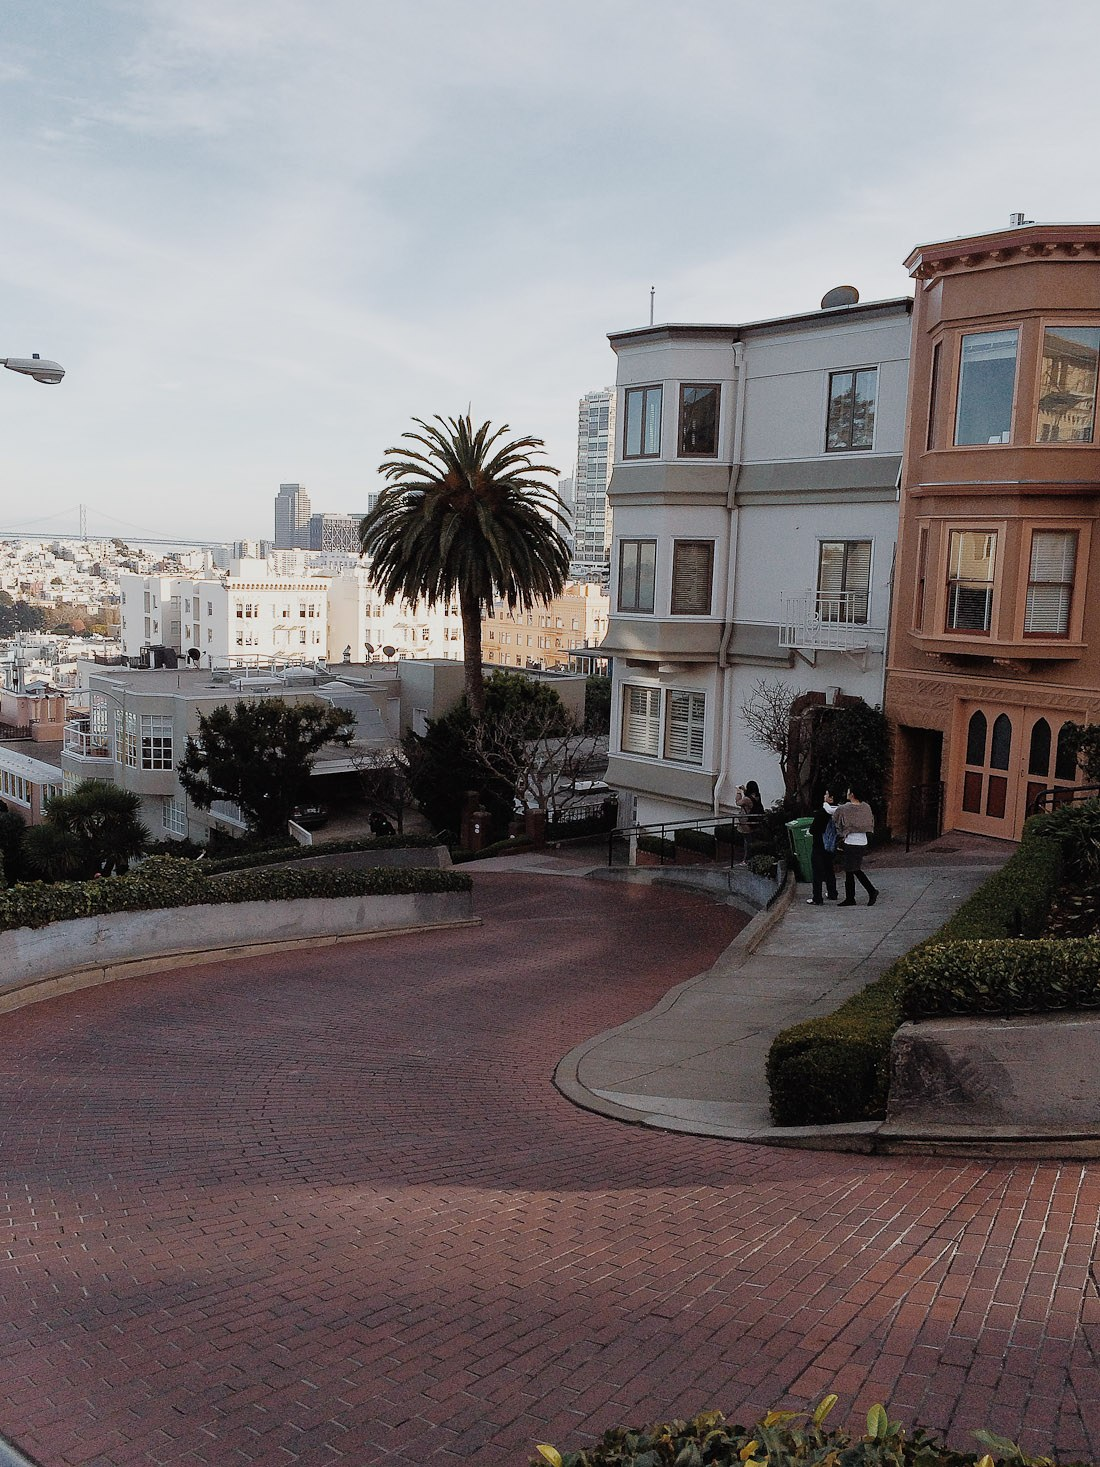 san francisco lombard twisted road curved cars building slope photo shershegoes.com1